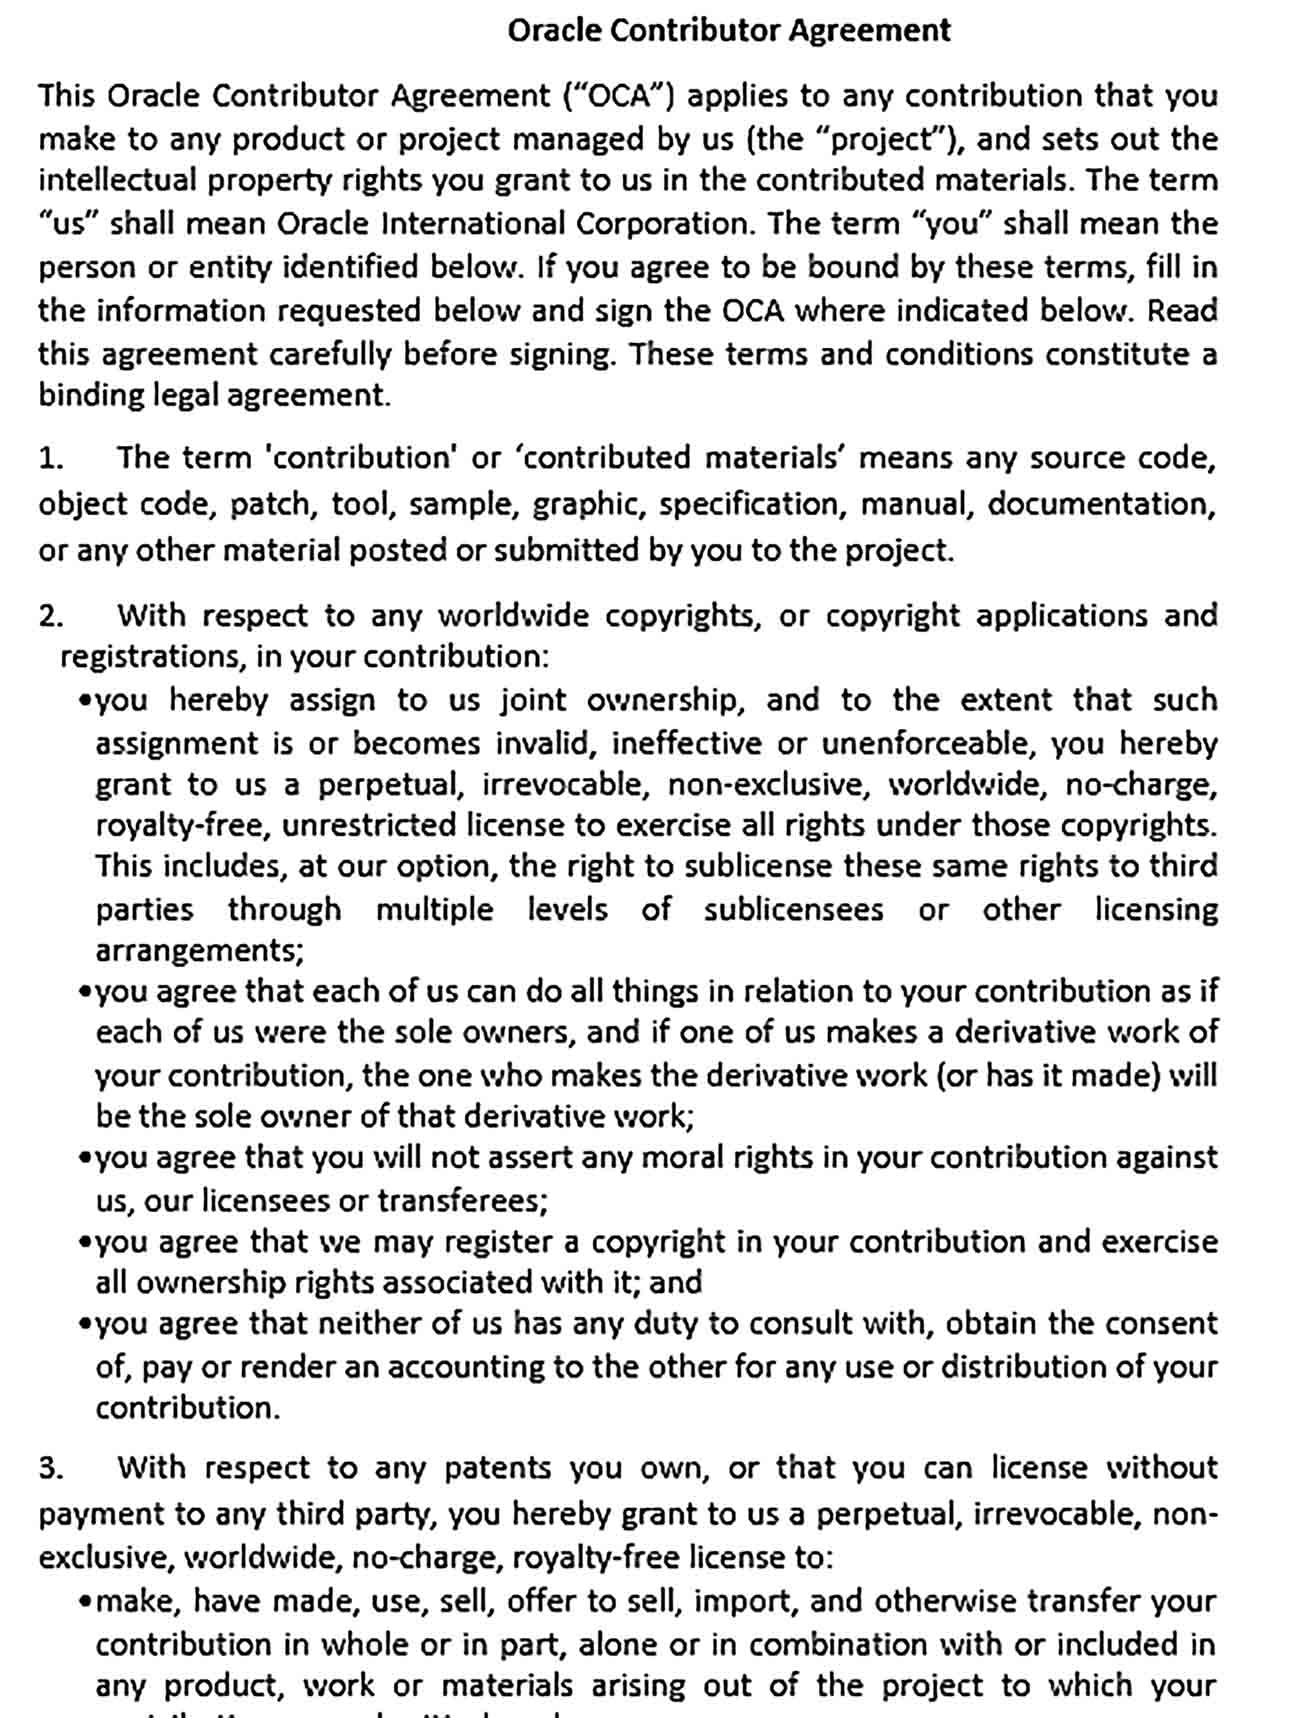 Sample Oracle Contributor Agreement